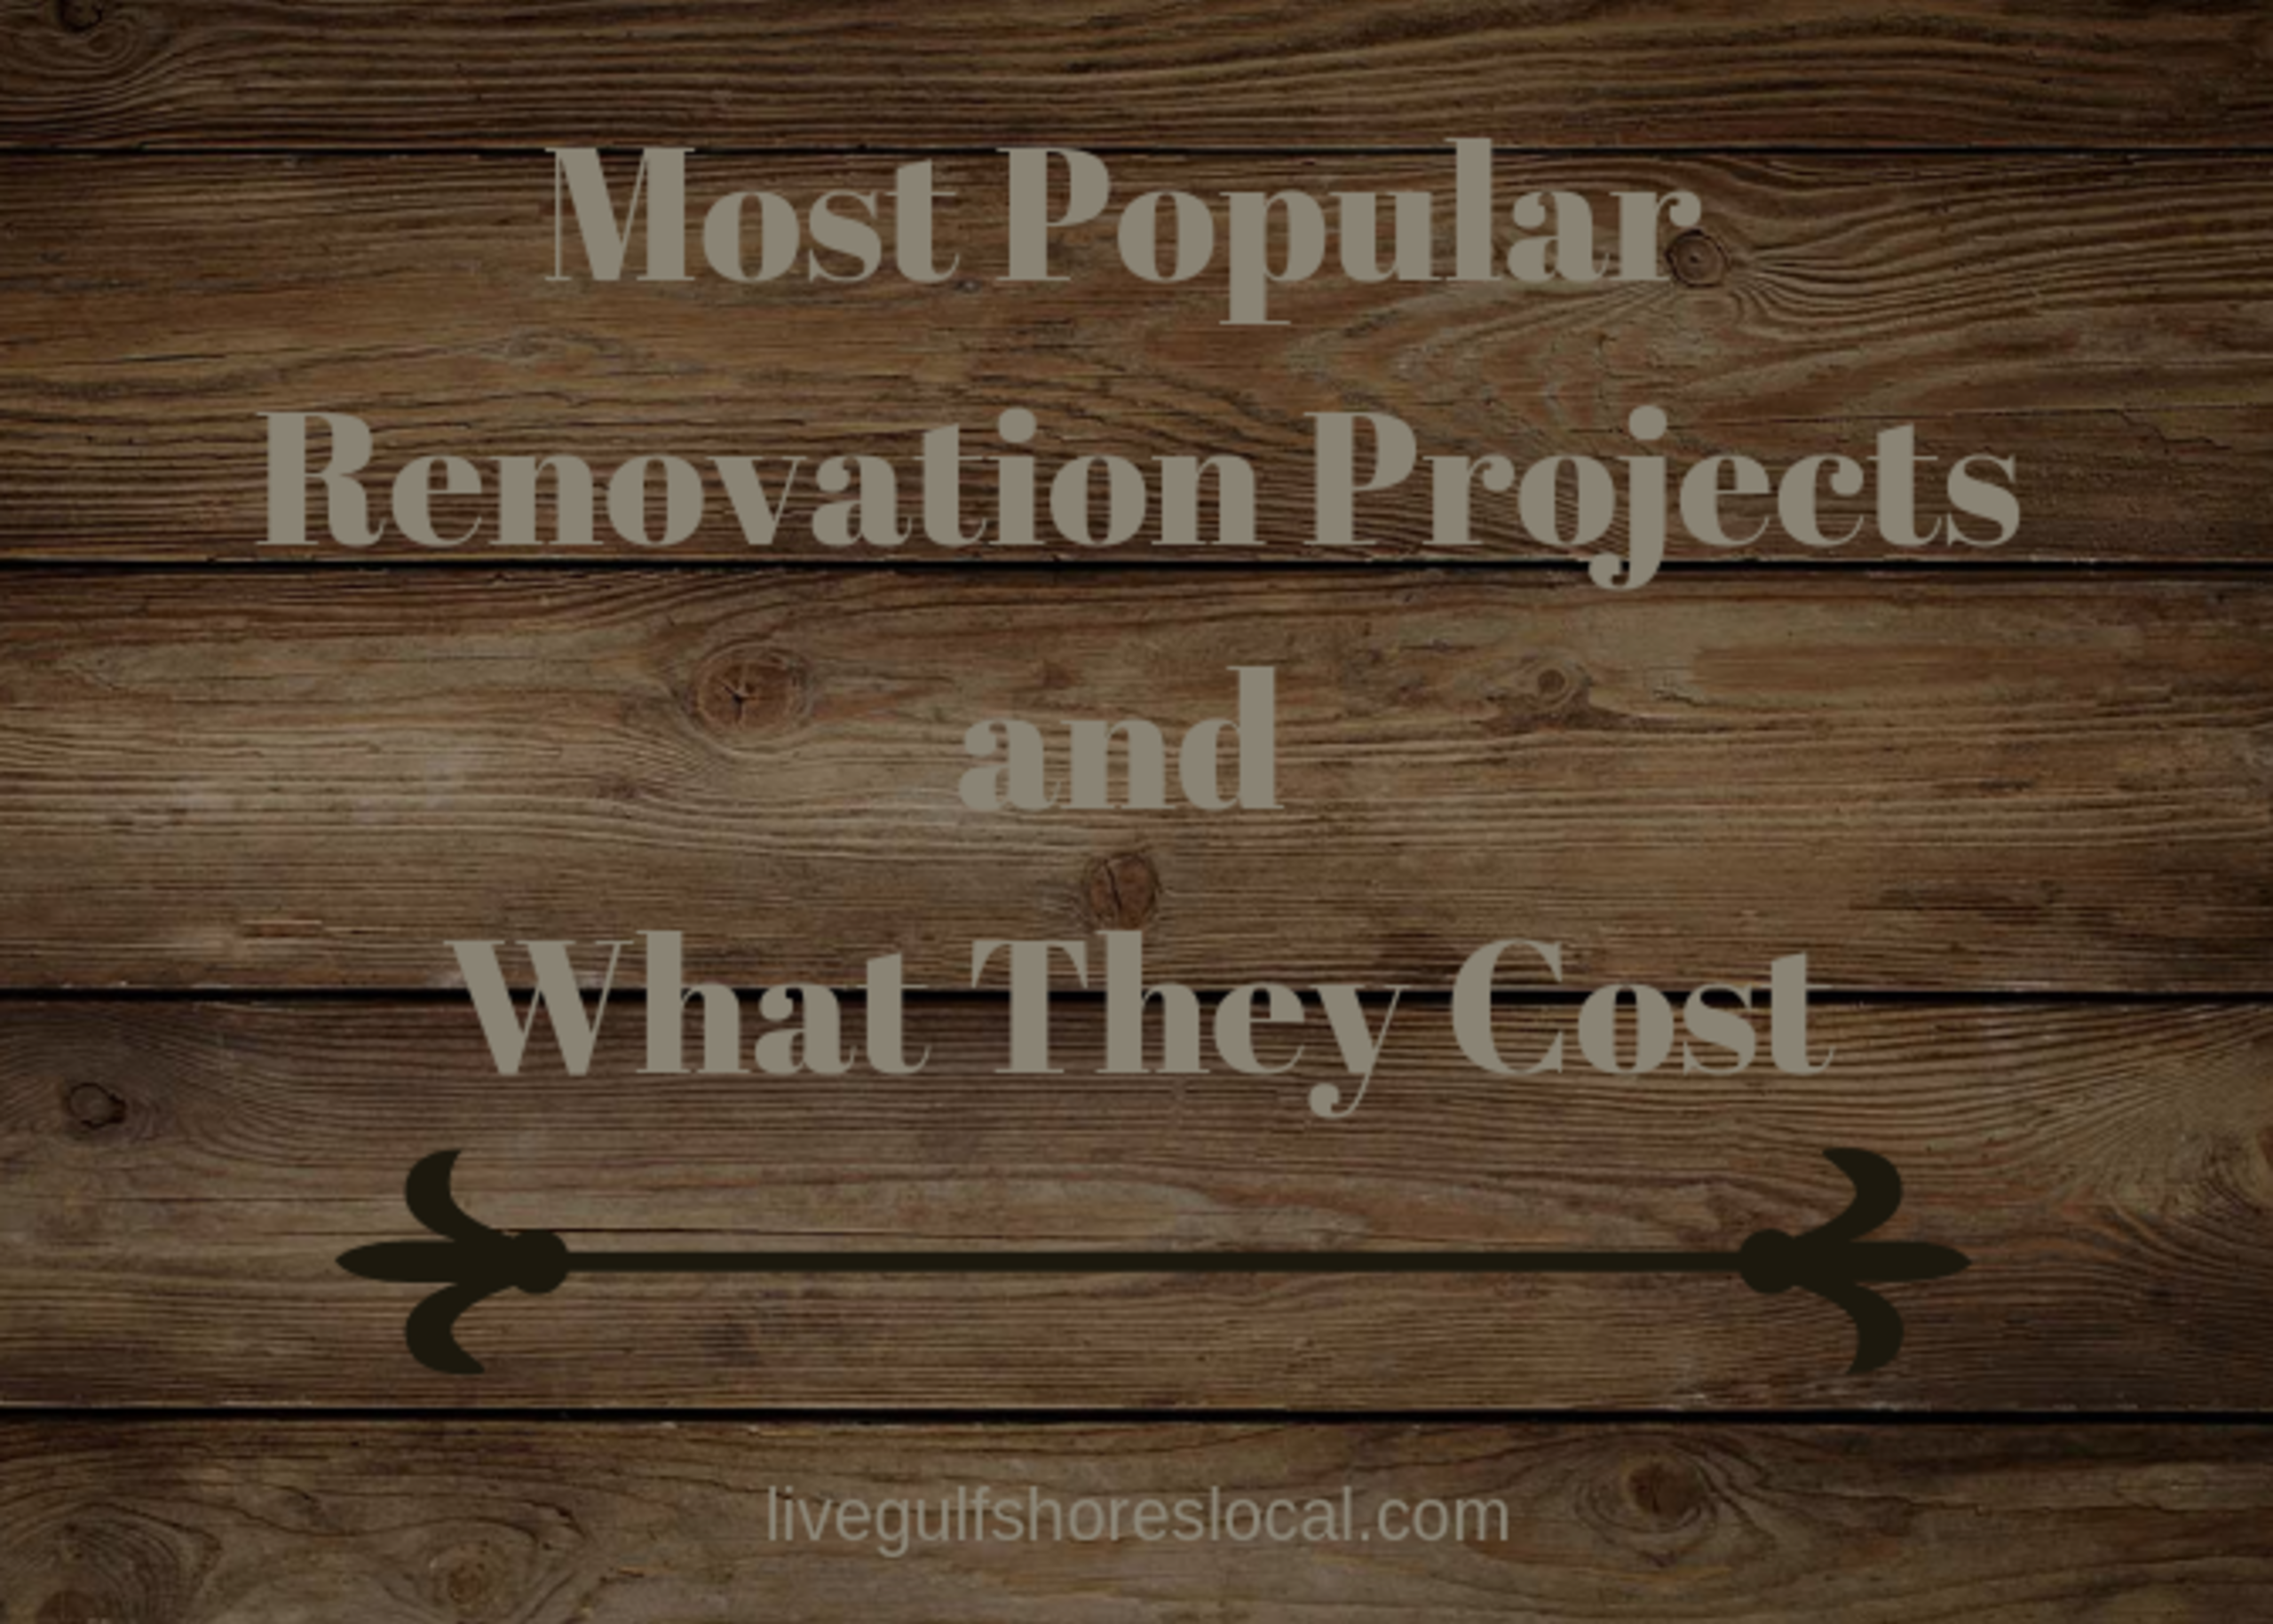 The Most Popular Renovation Projects and What They Cost